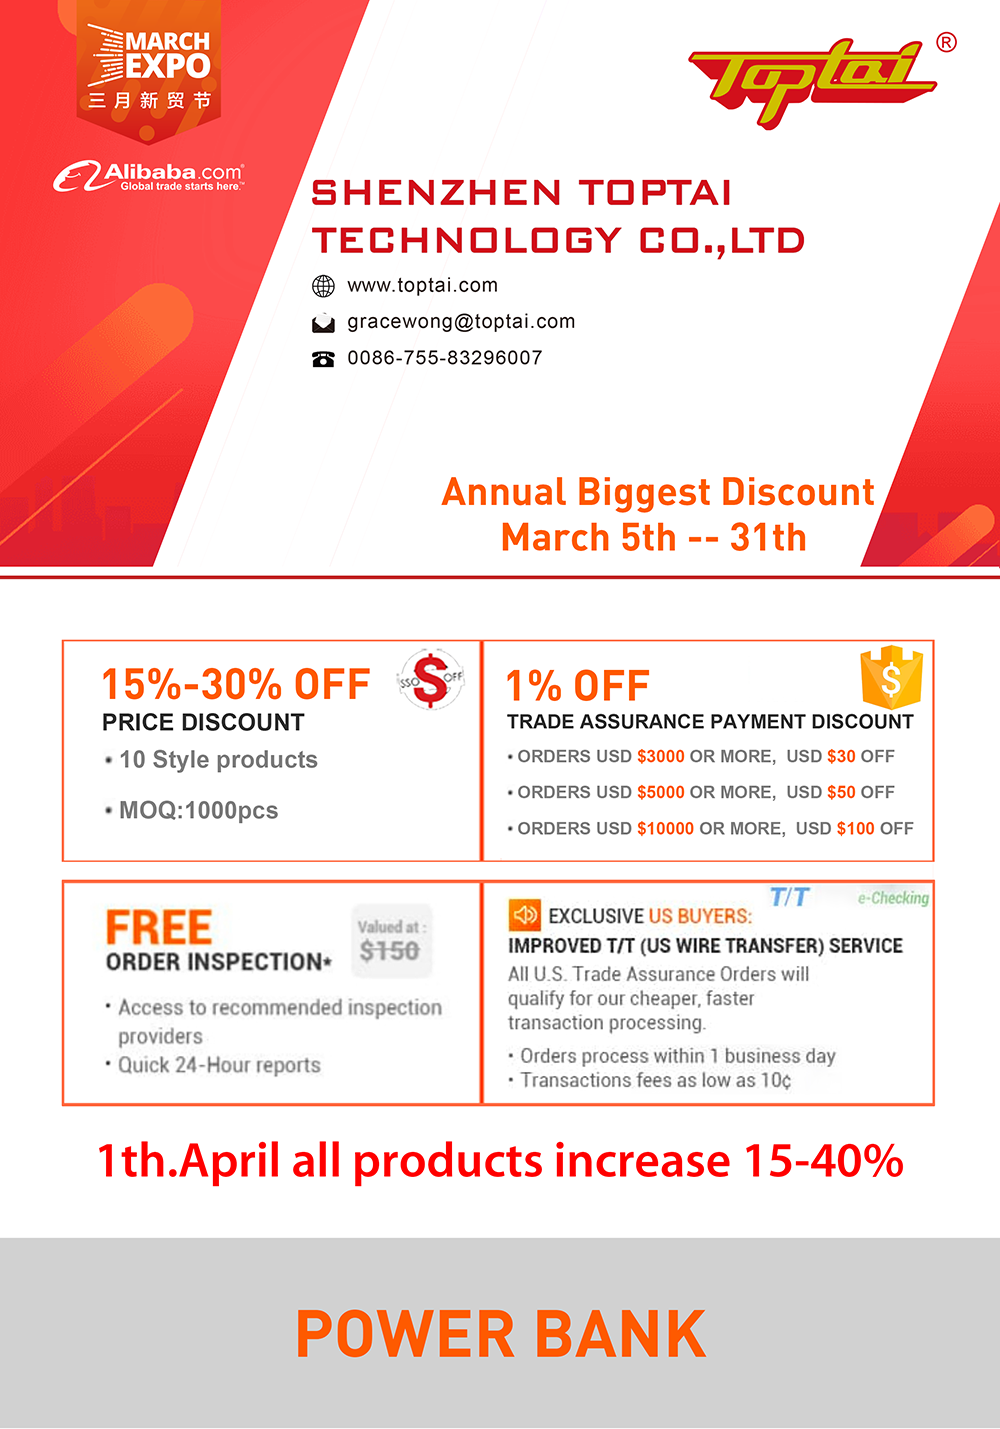 Annual Biggest Discount March